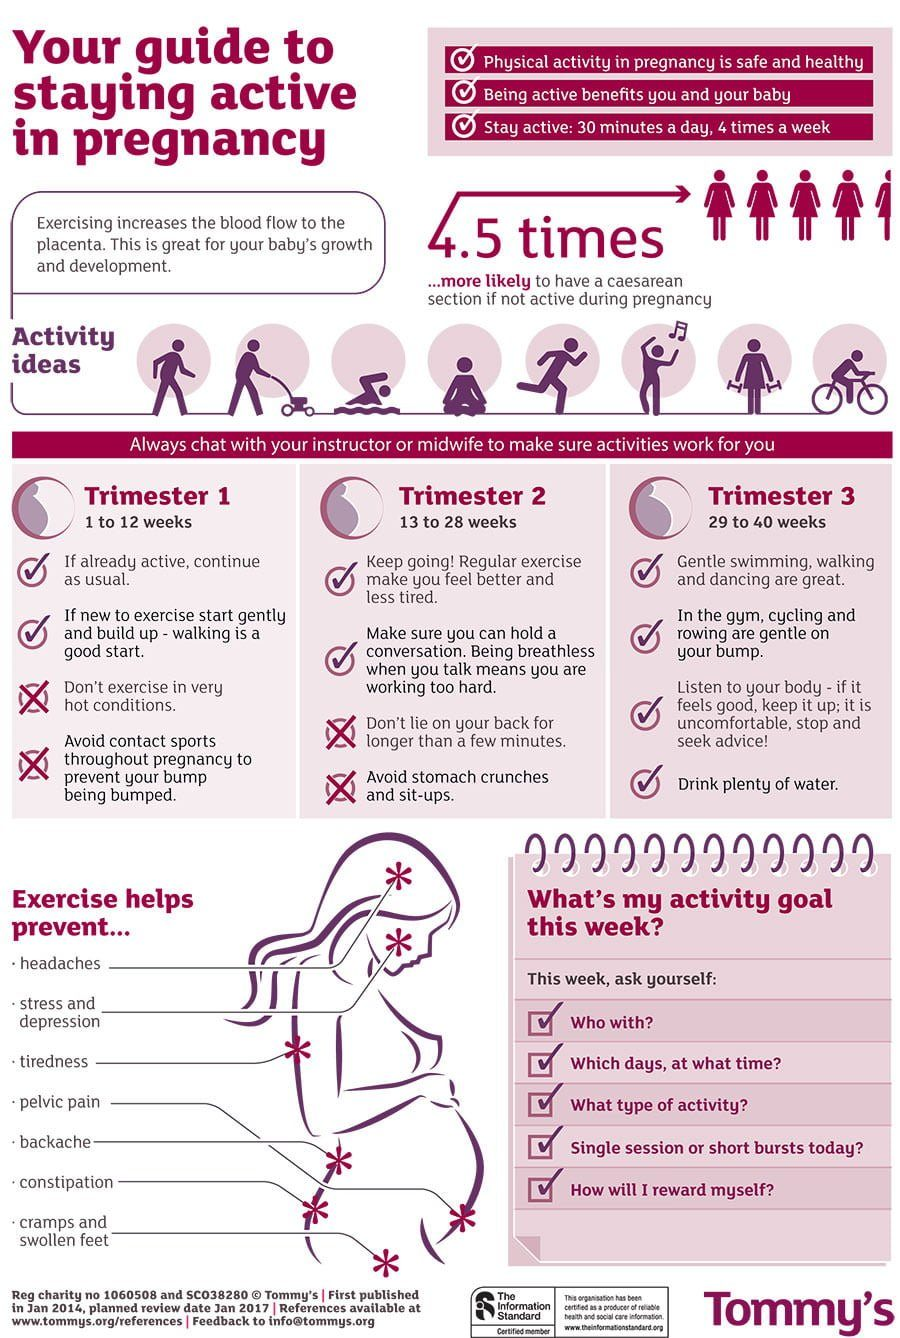 Guide To Staying Active In Pregnancy Infographic